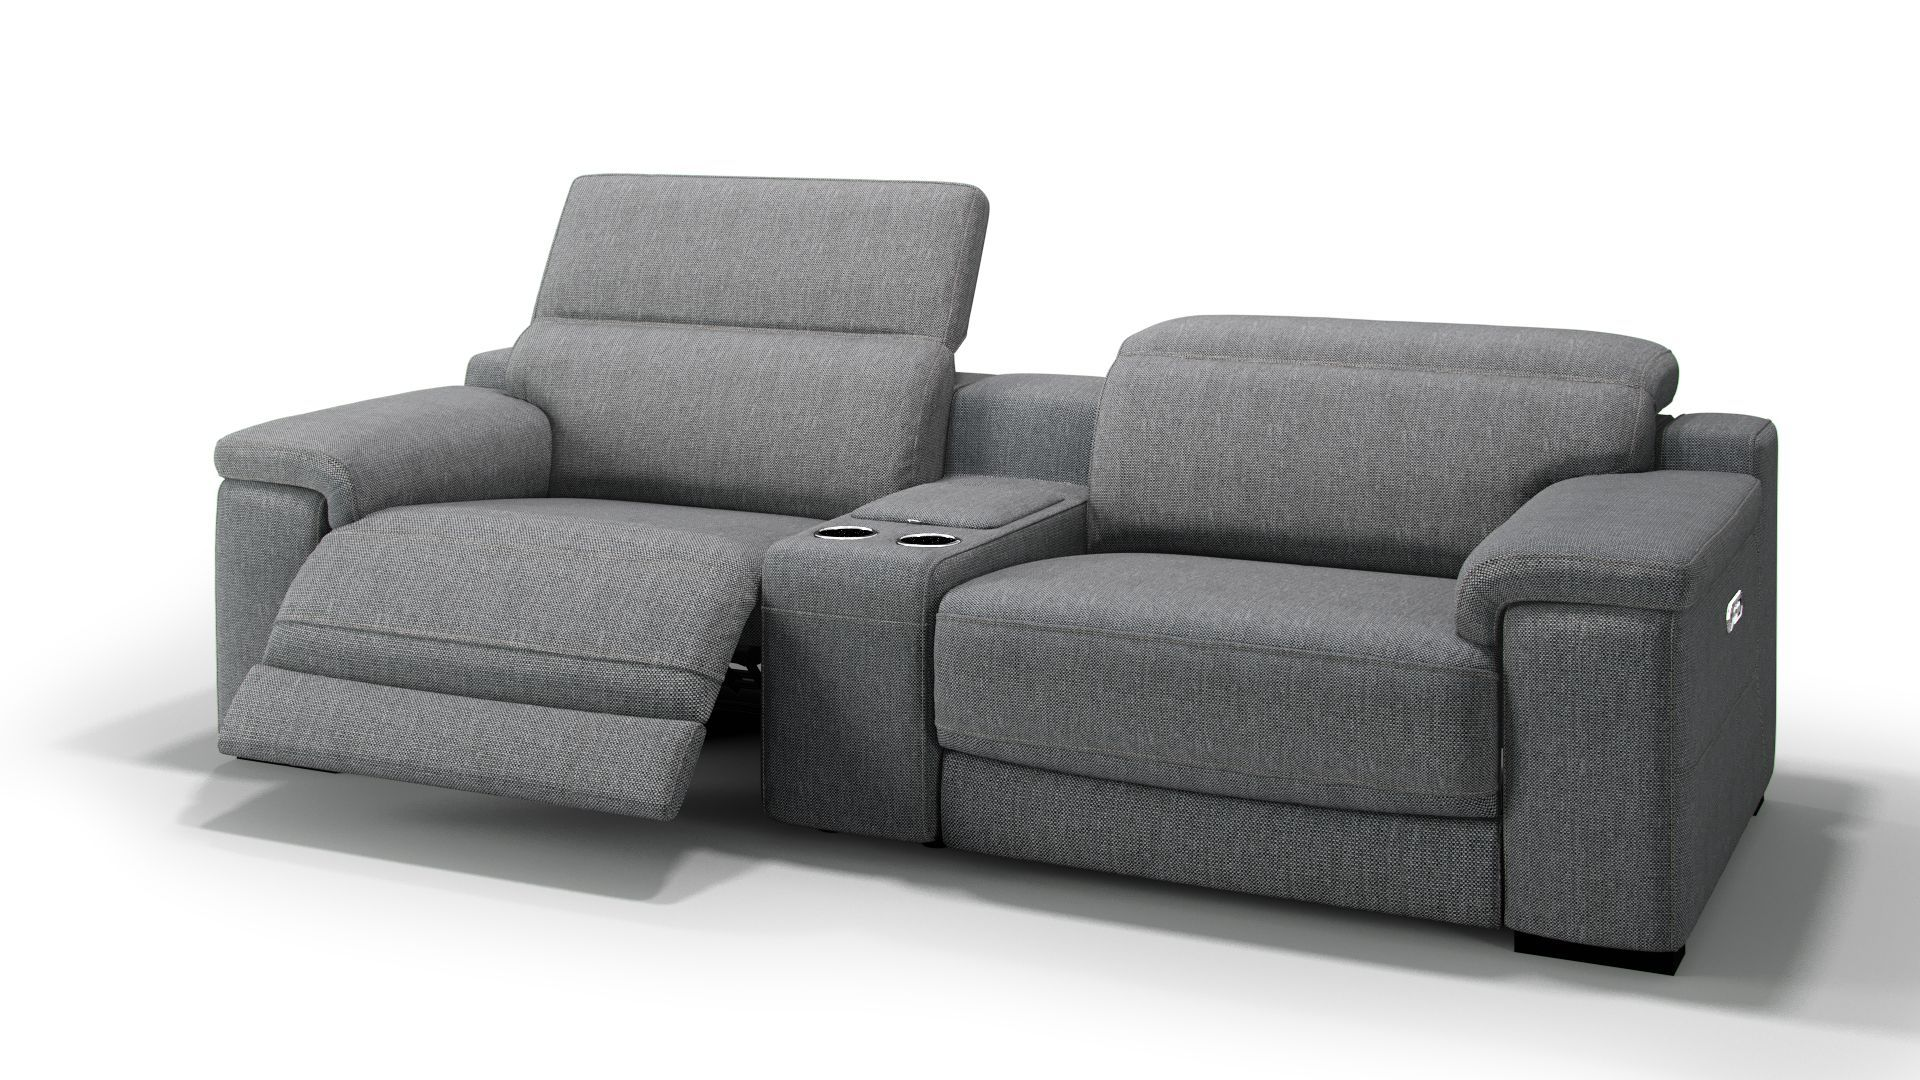 Sora Relaxsofa 2 Sitzer In 2020 Modern Couch Sofa Sofa Couch